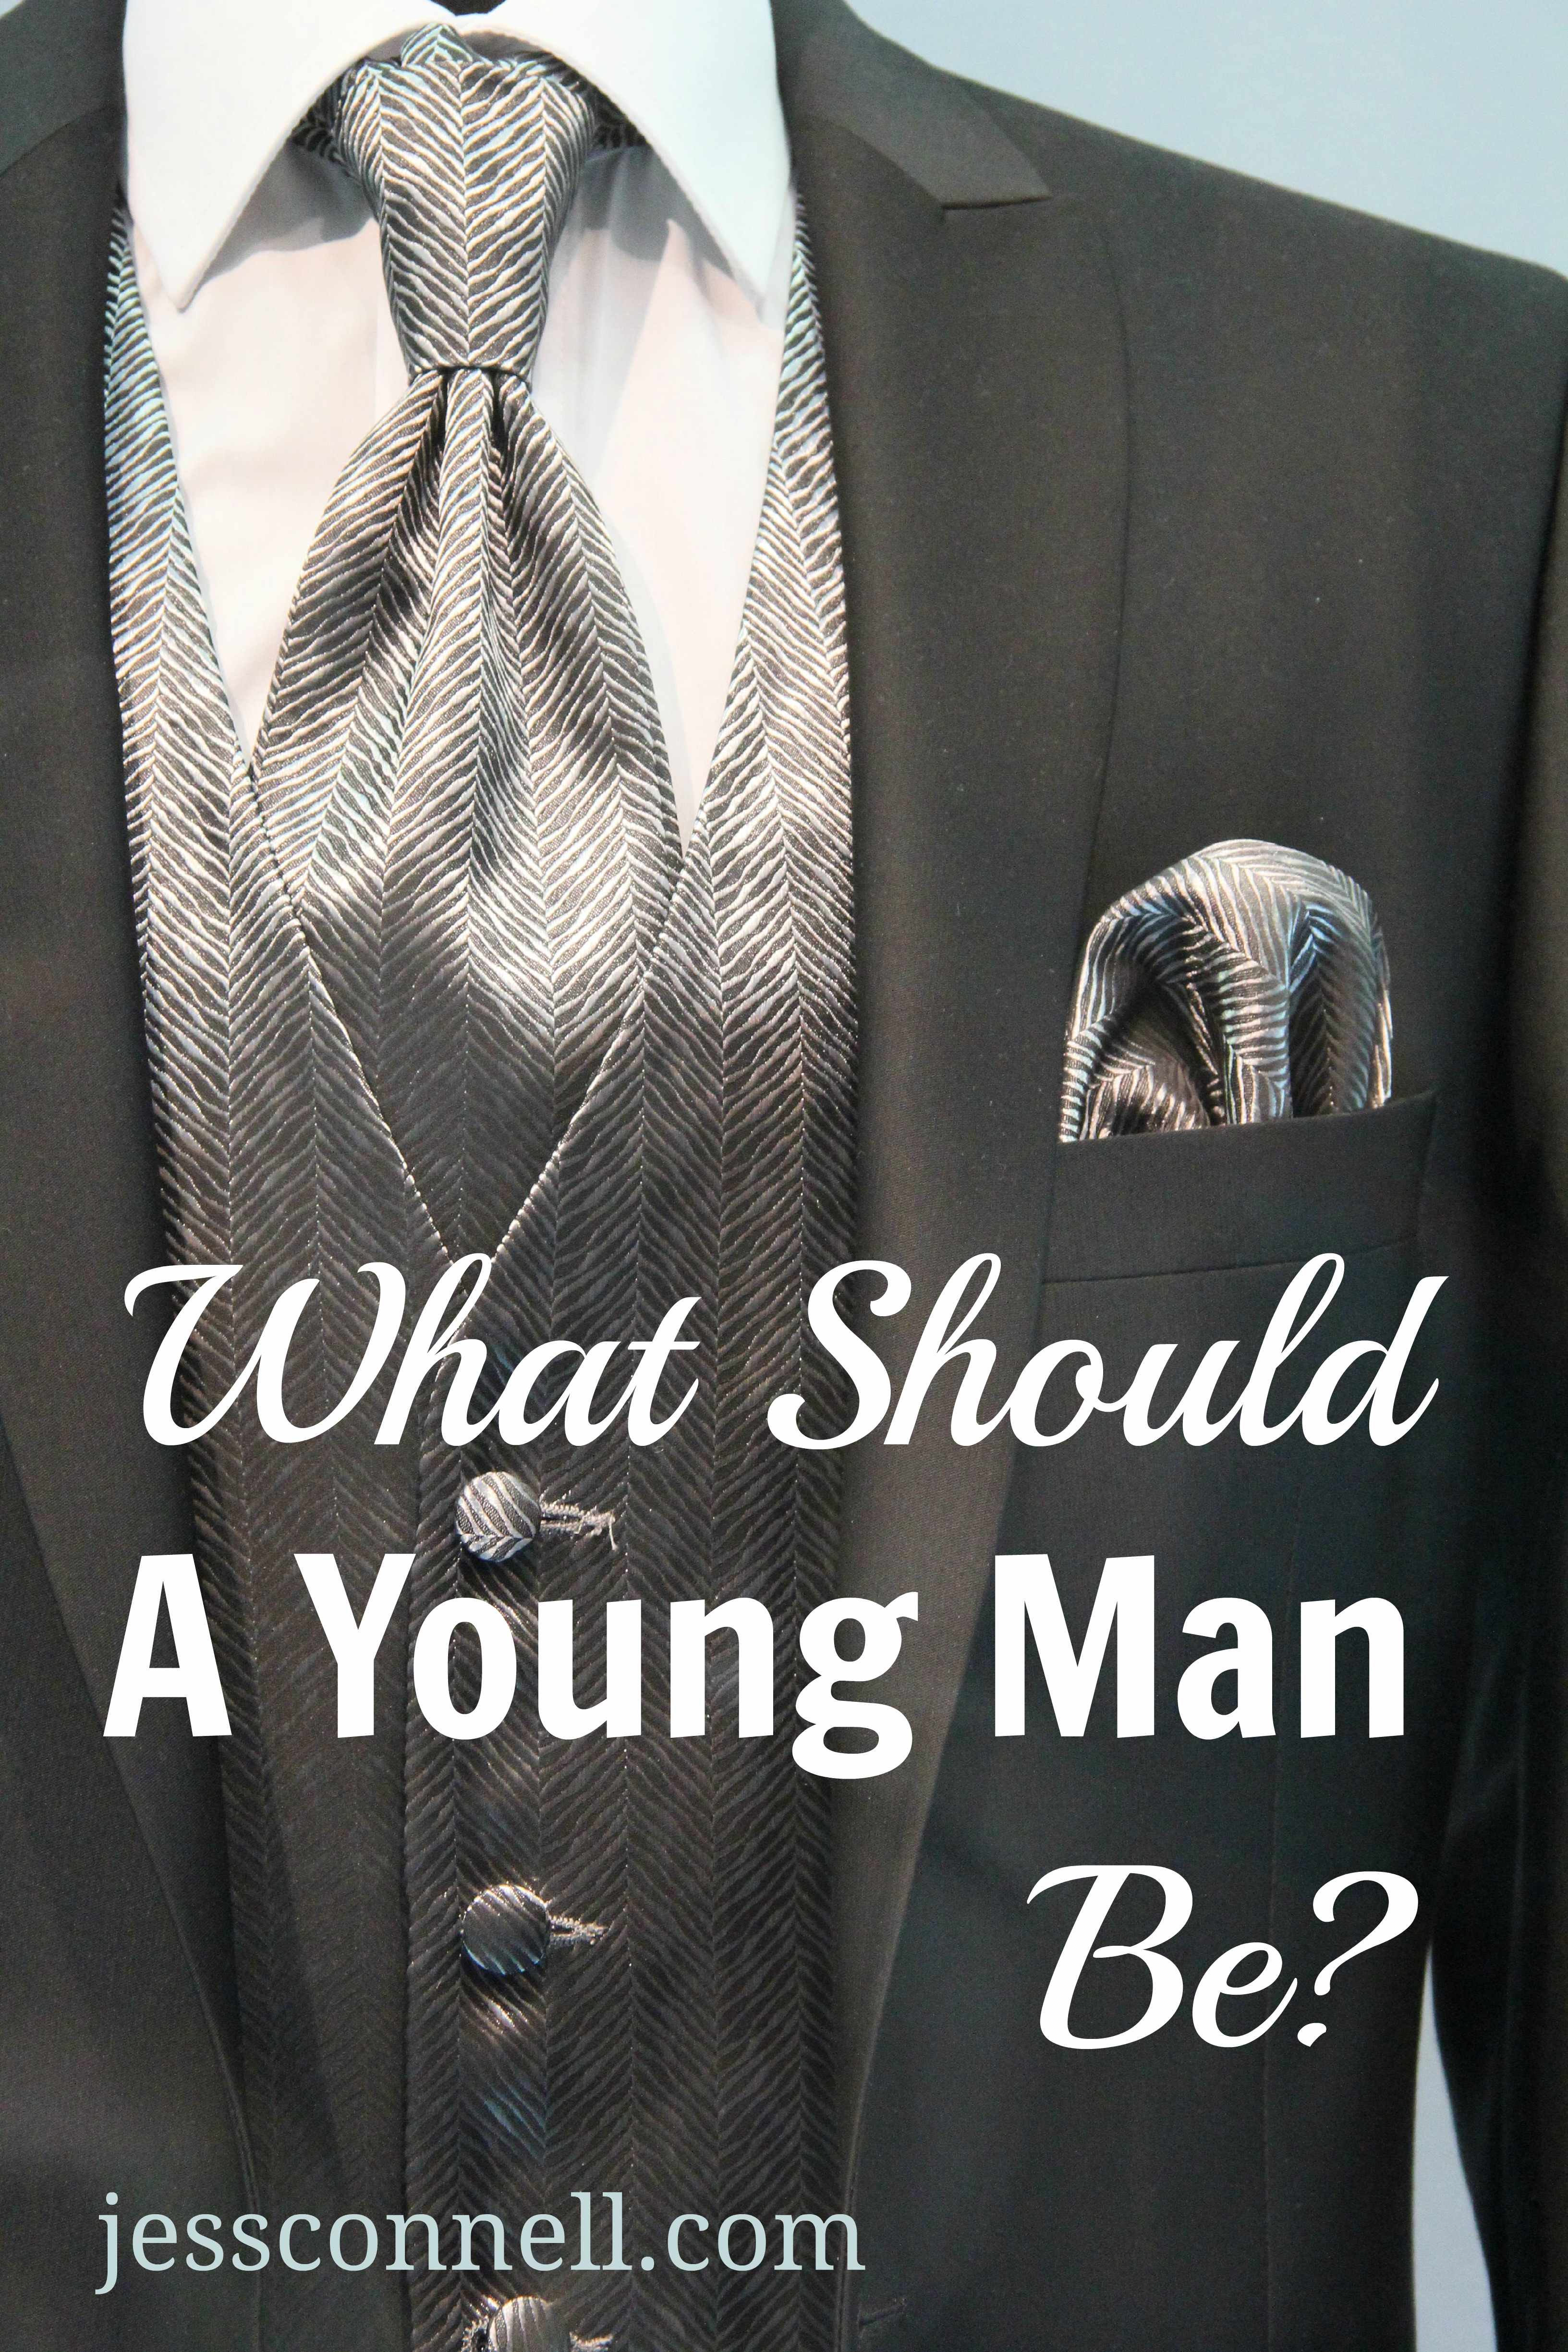 What Should a Young Man Be? // jessconnell.com